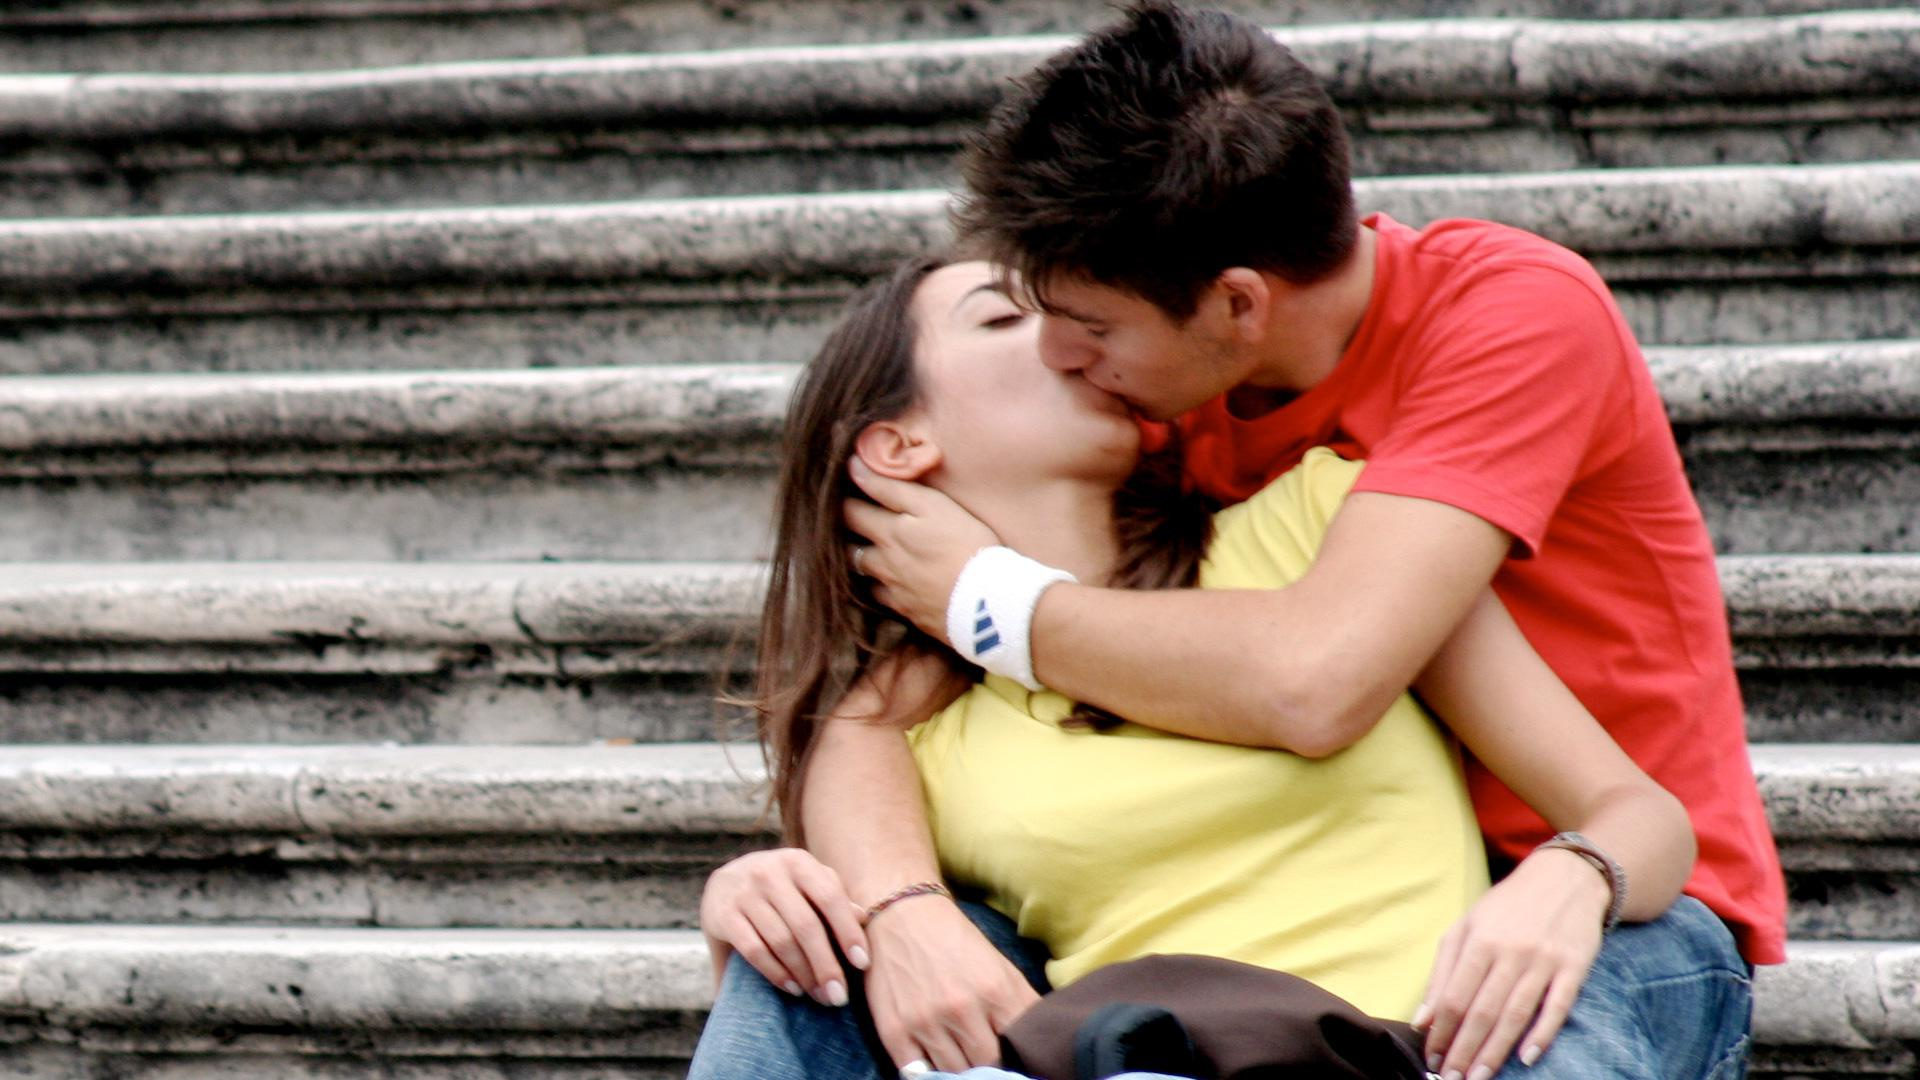 10 Reasons why kissing is great for your health